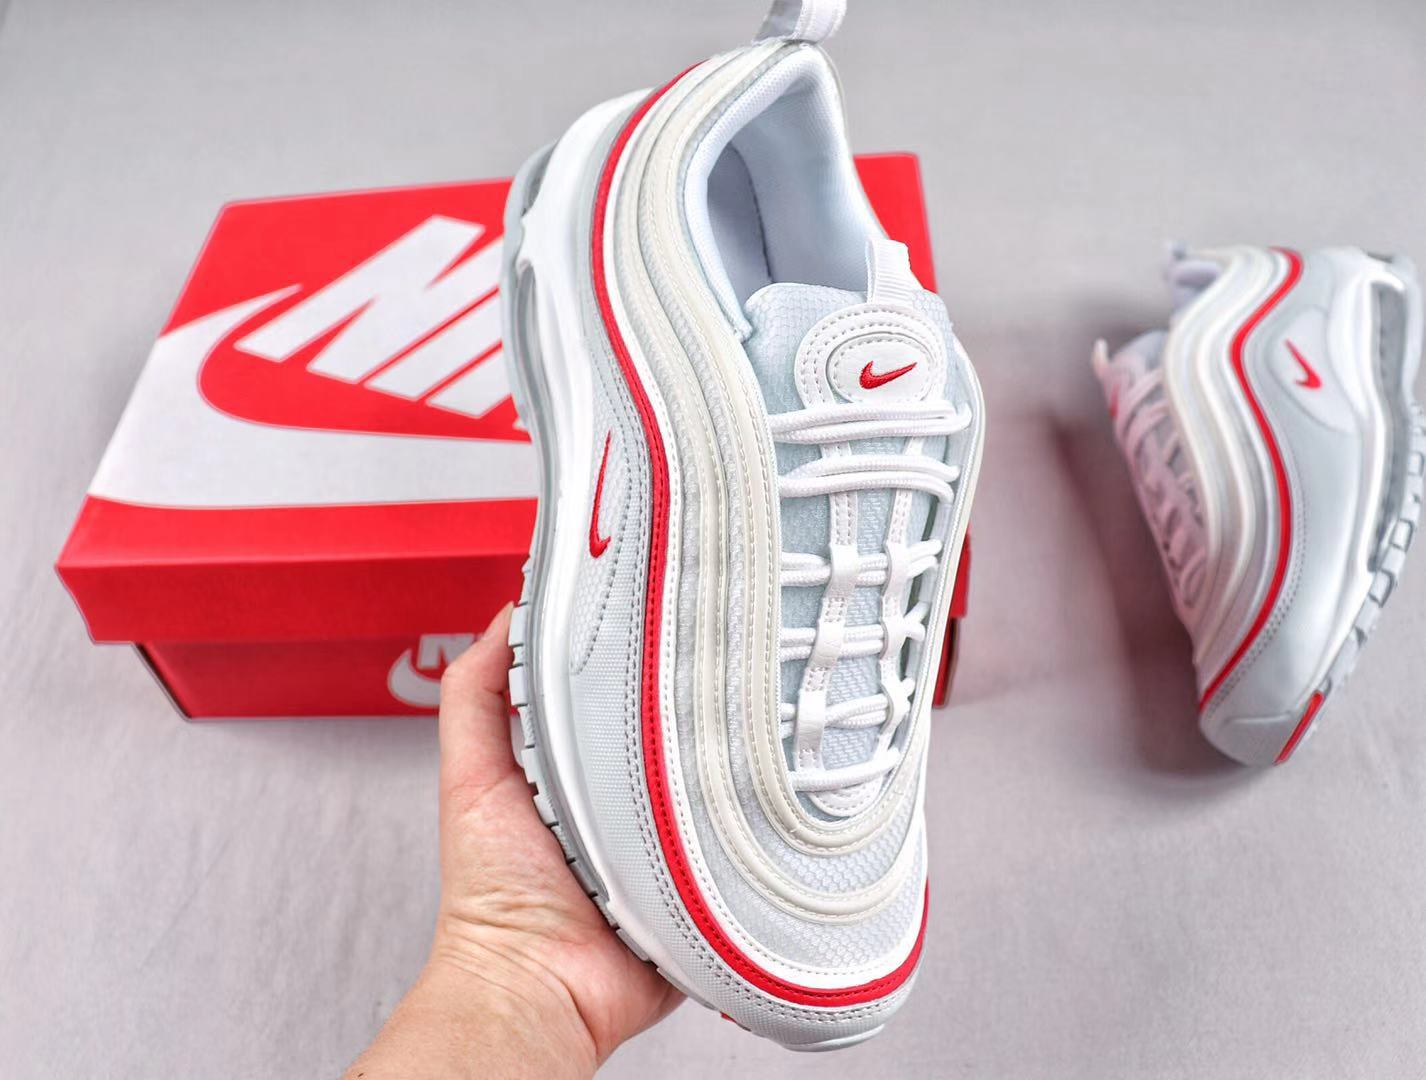 2019 Nike Air Max 97 White/Red Brand New Sneakers AR5531-002